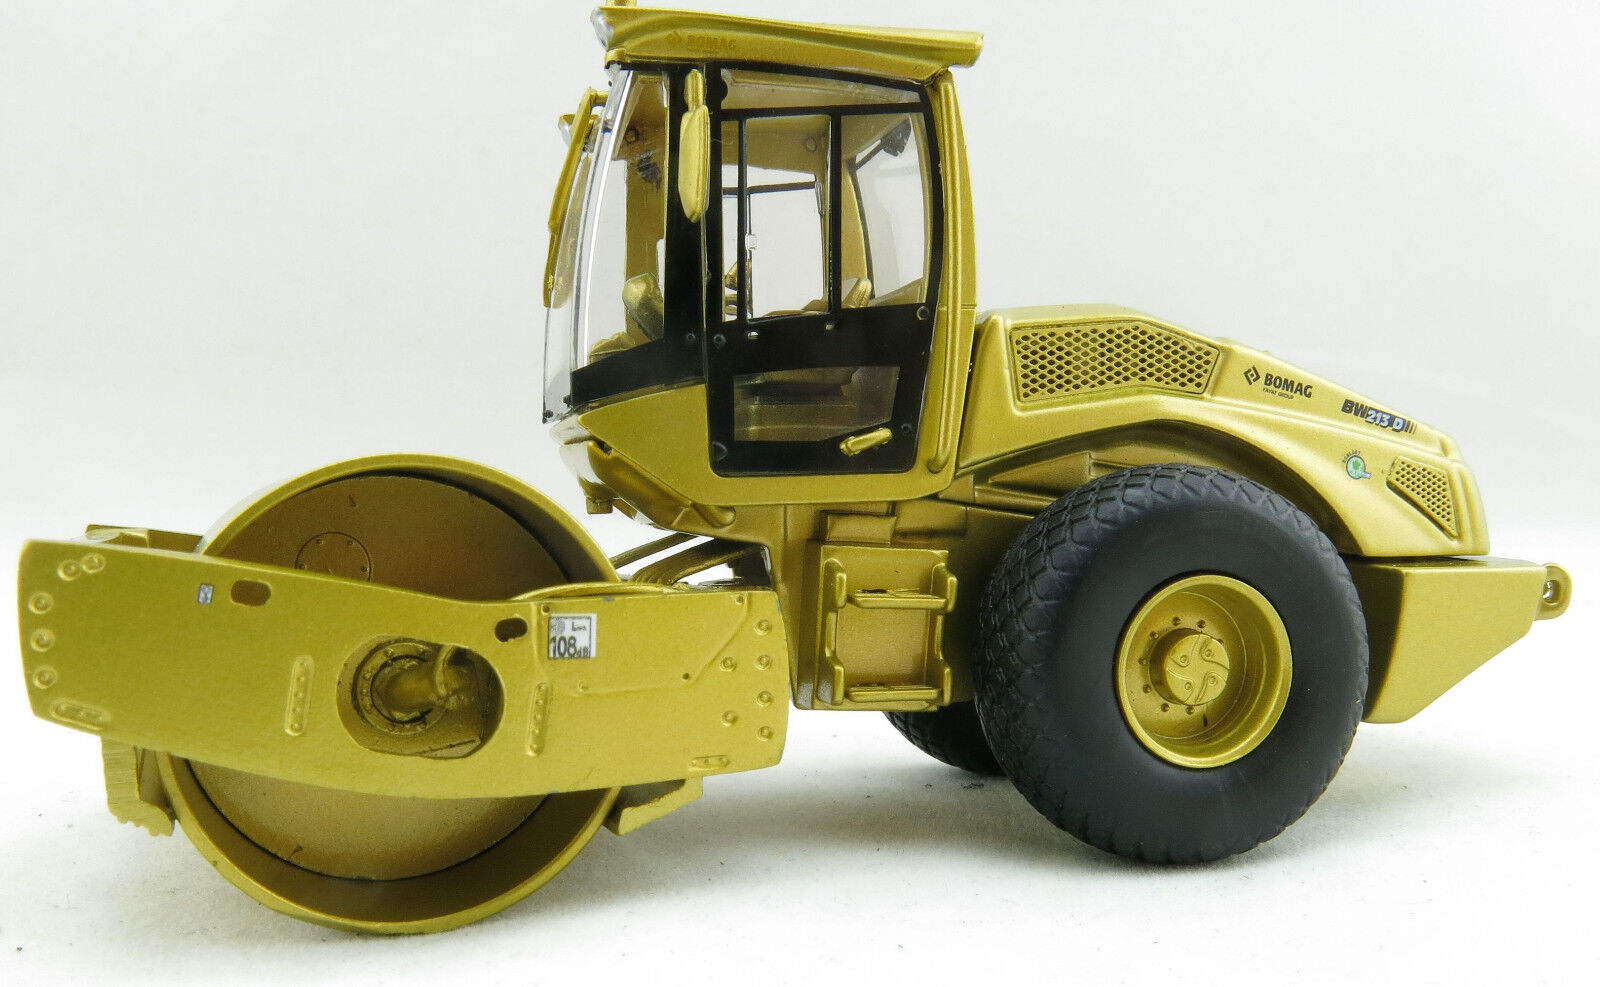 Kaster Scale Models K213 oro BW 213 D-5 SINGLE DRUM ROLLER Limited Edition 1 50